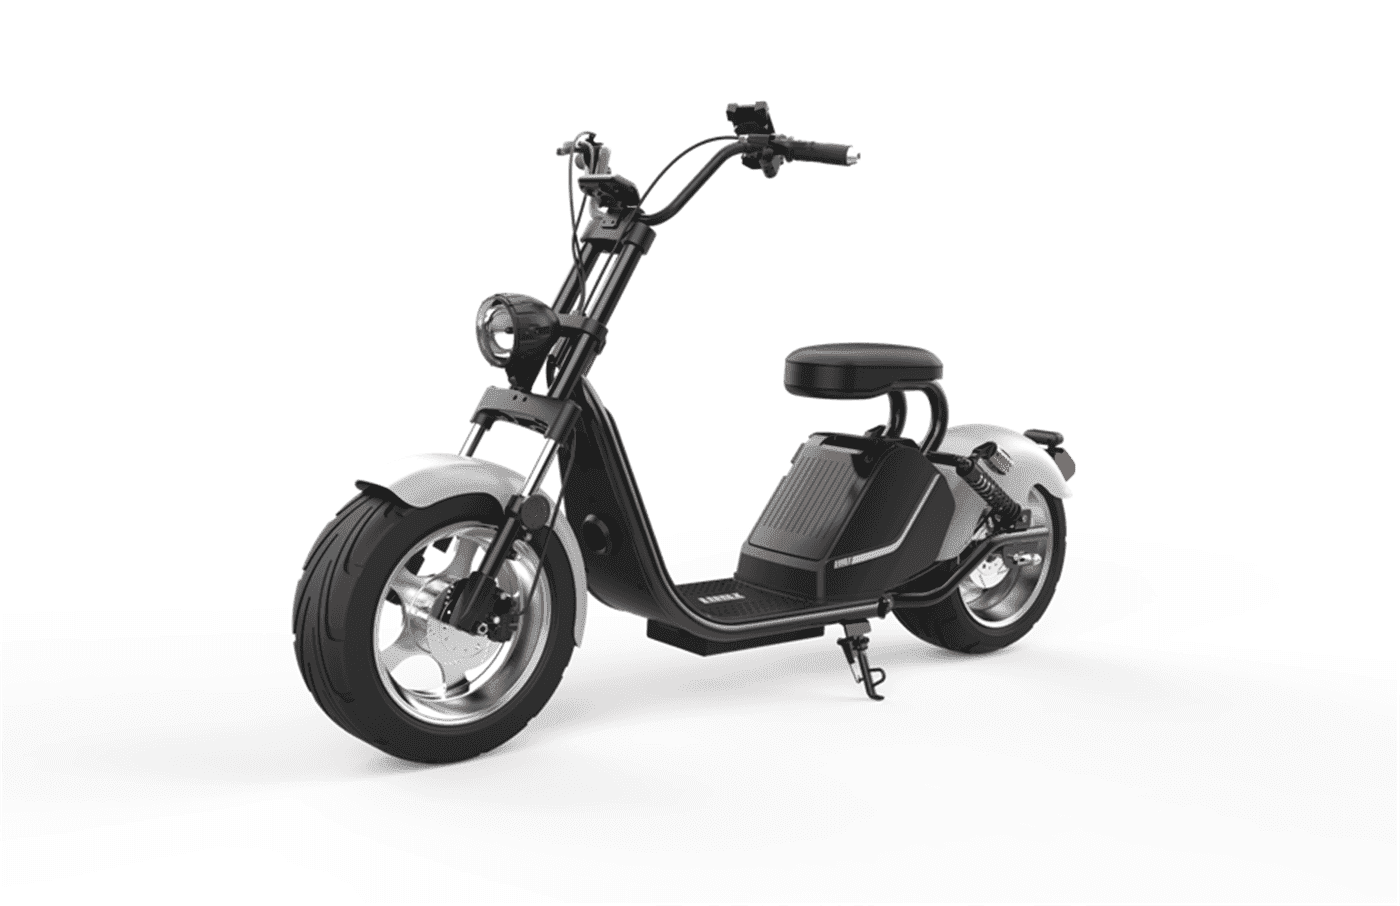 Caigiees Citycoco Harley big wheel electric scooter with EEC approved from Rooder factory supplier exhibition March Expo alibaba Super September Purchasing (7)